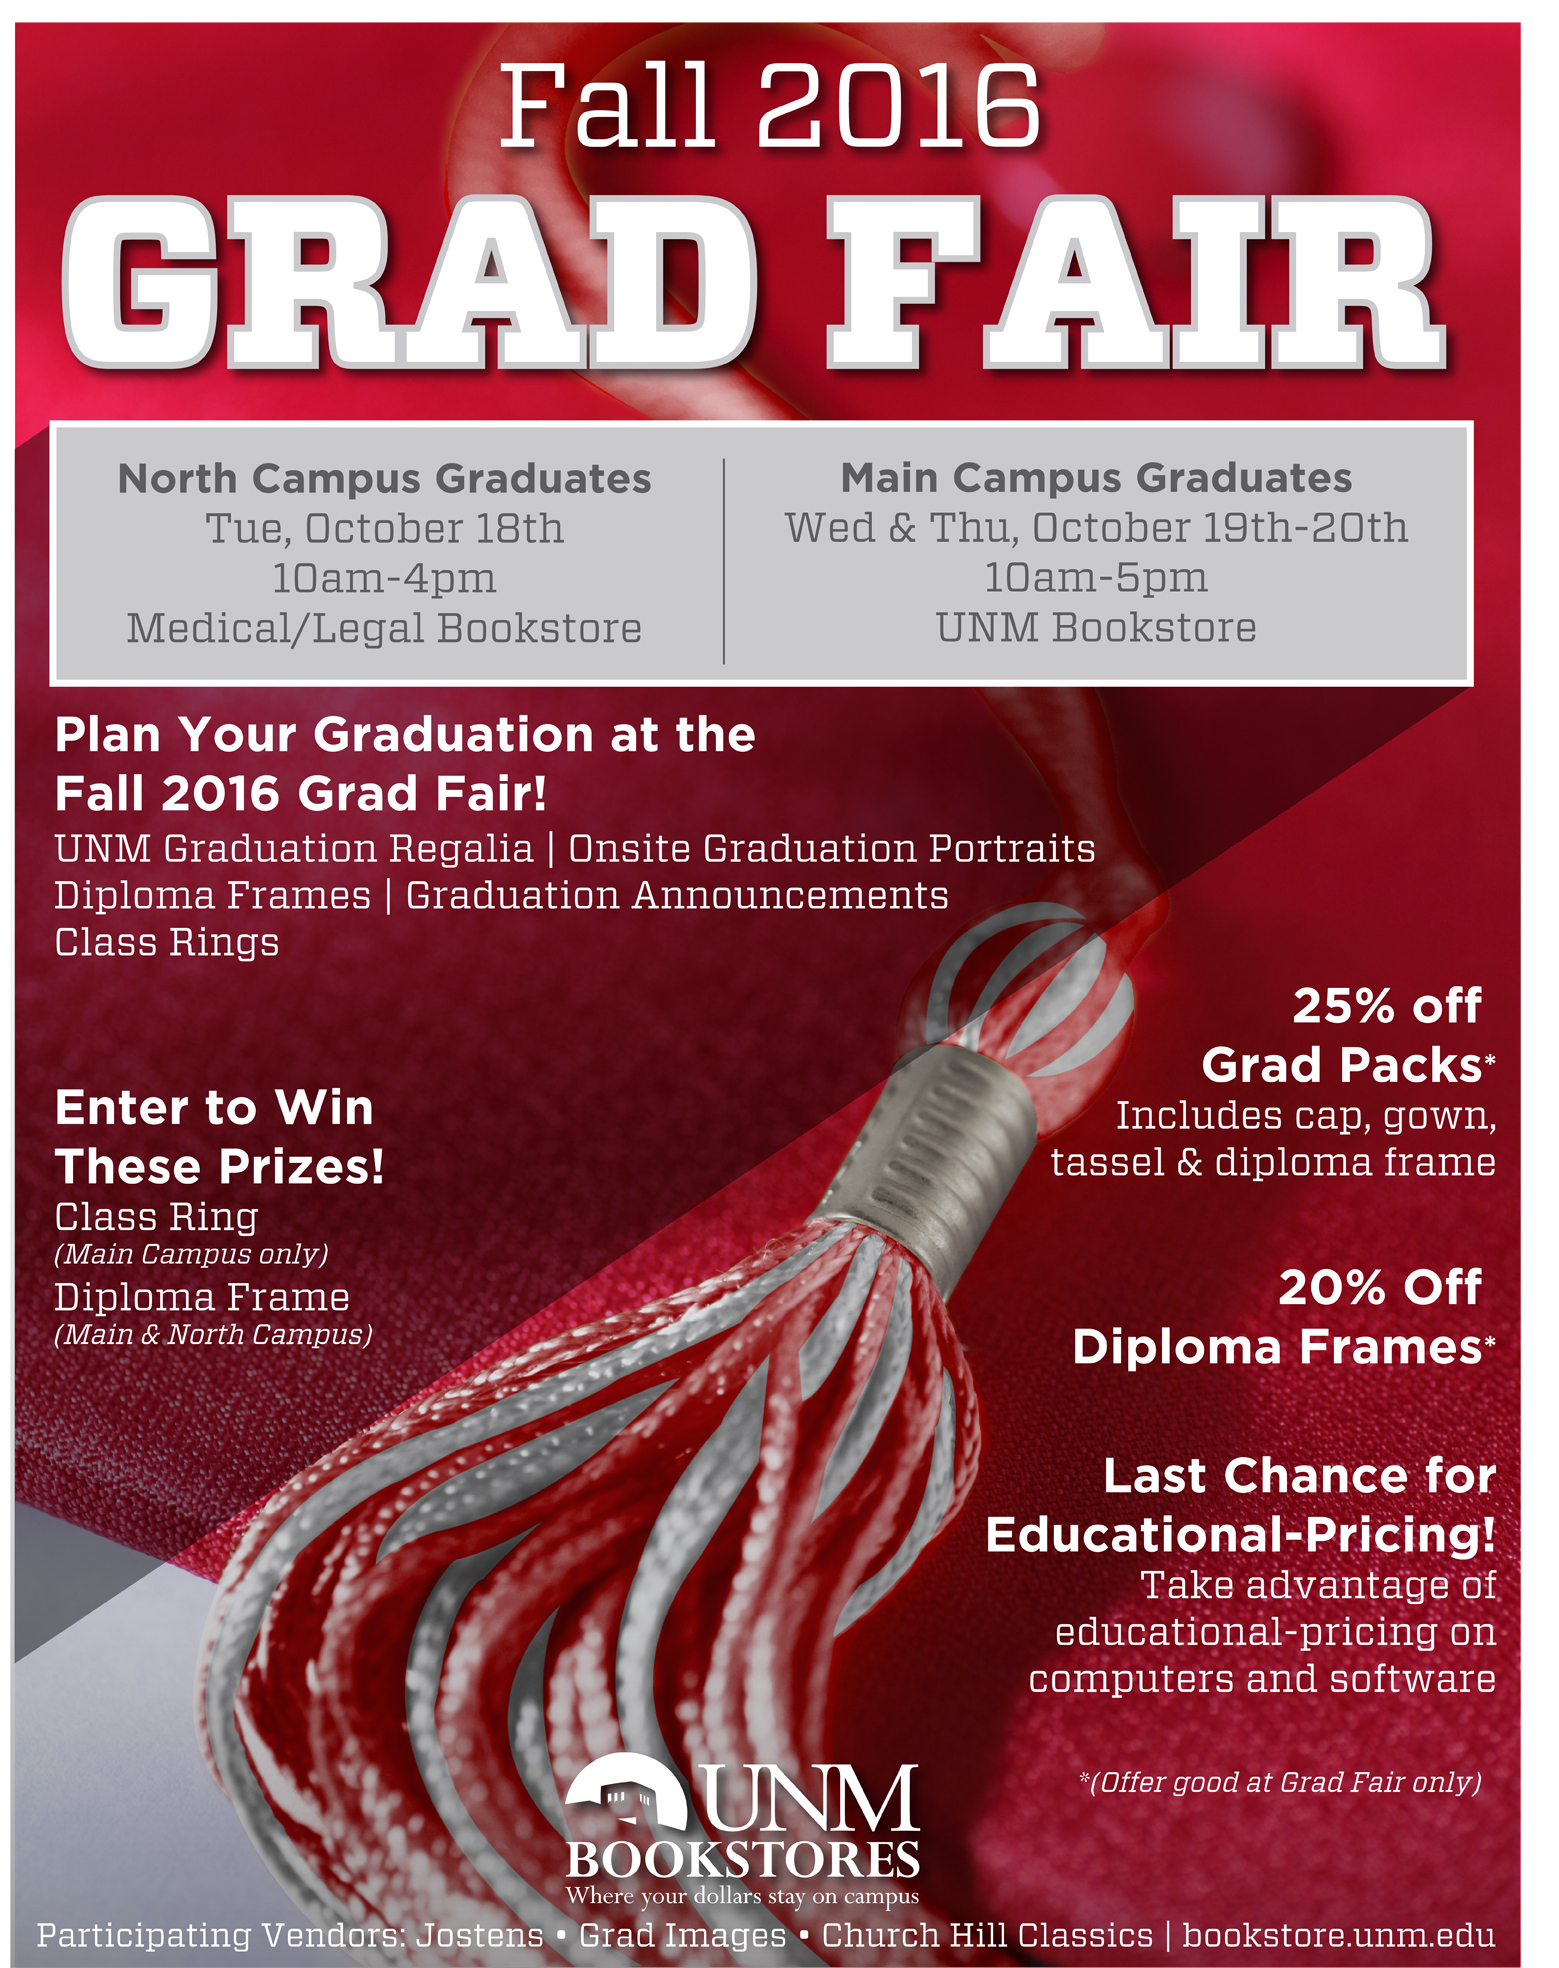 Unm Events Calendar Fall 2016 Grad Fair